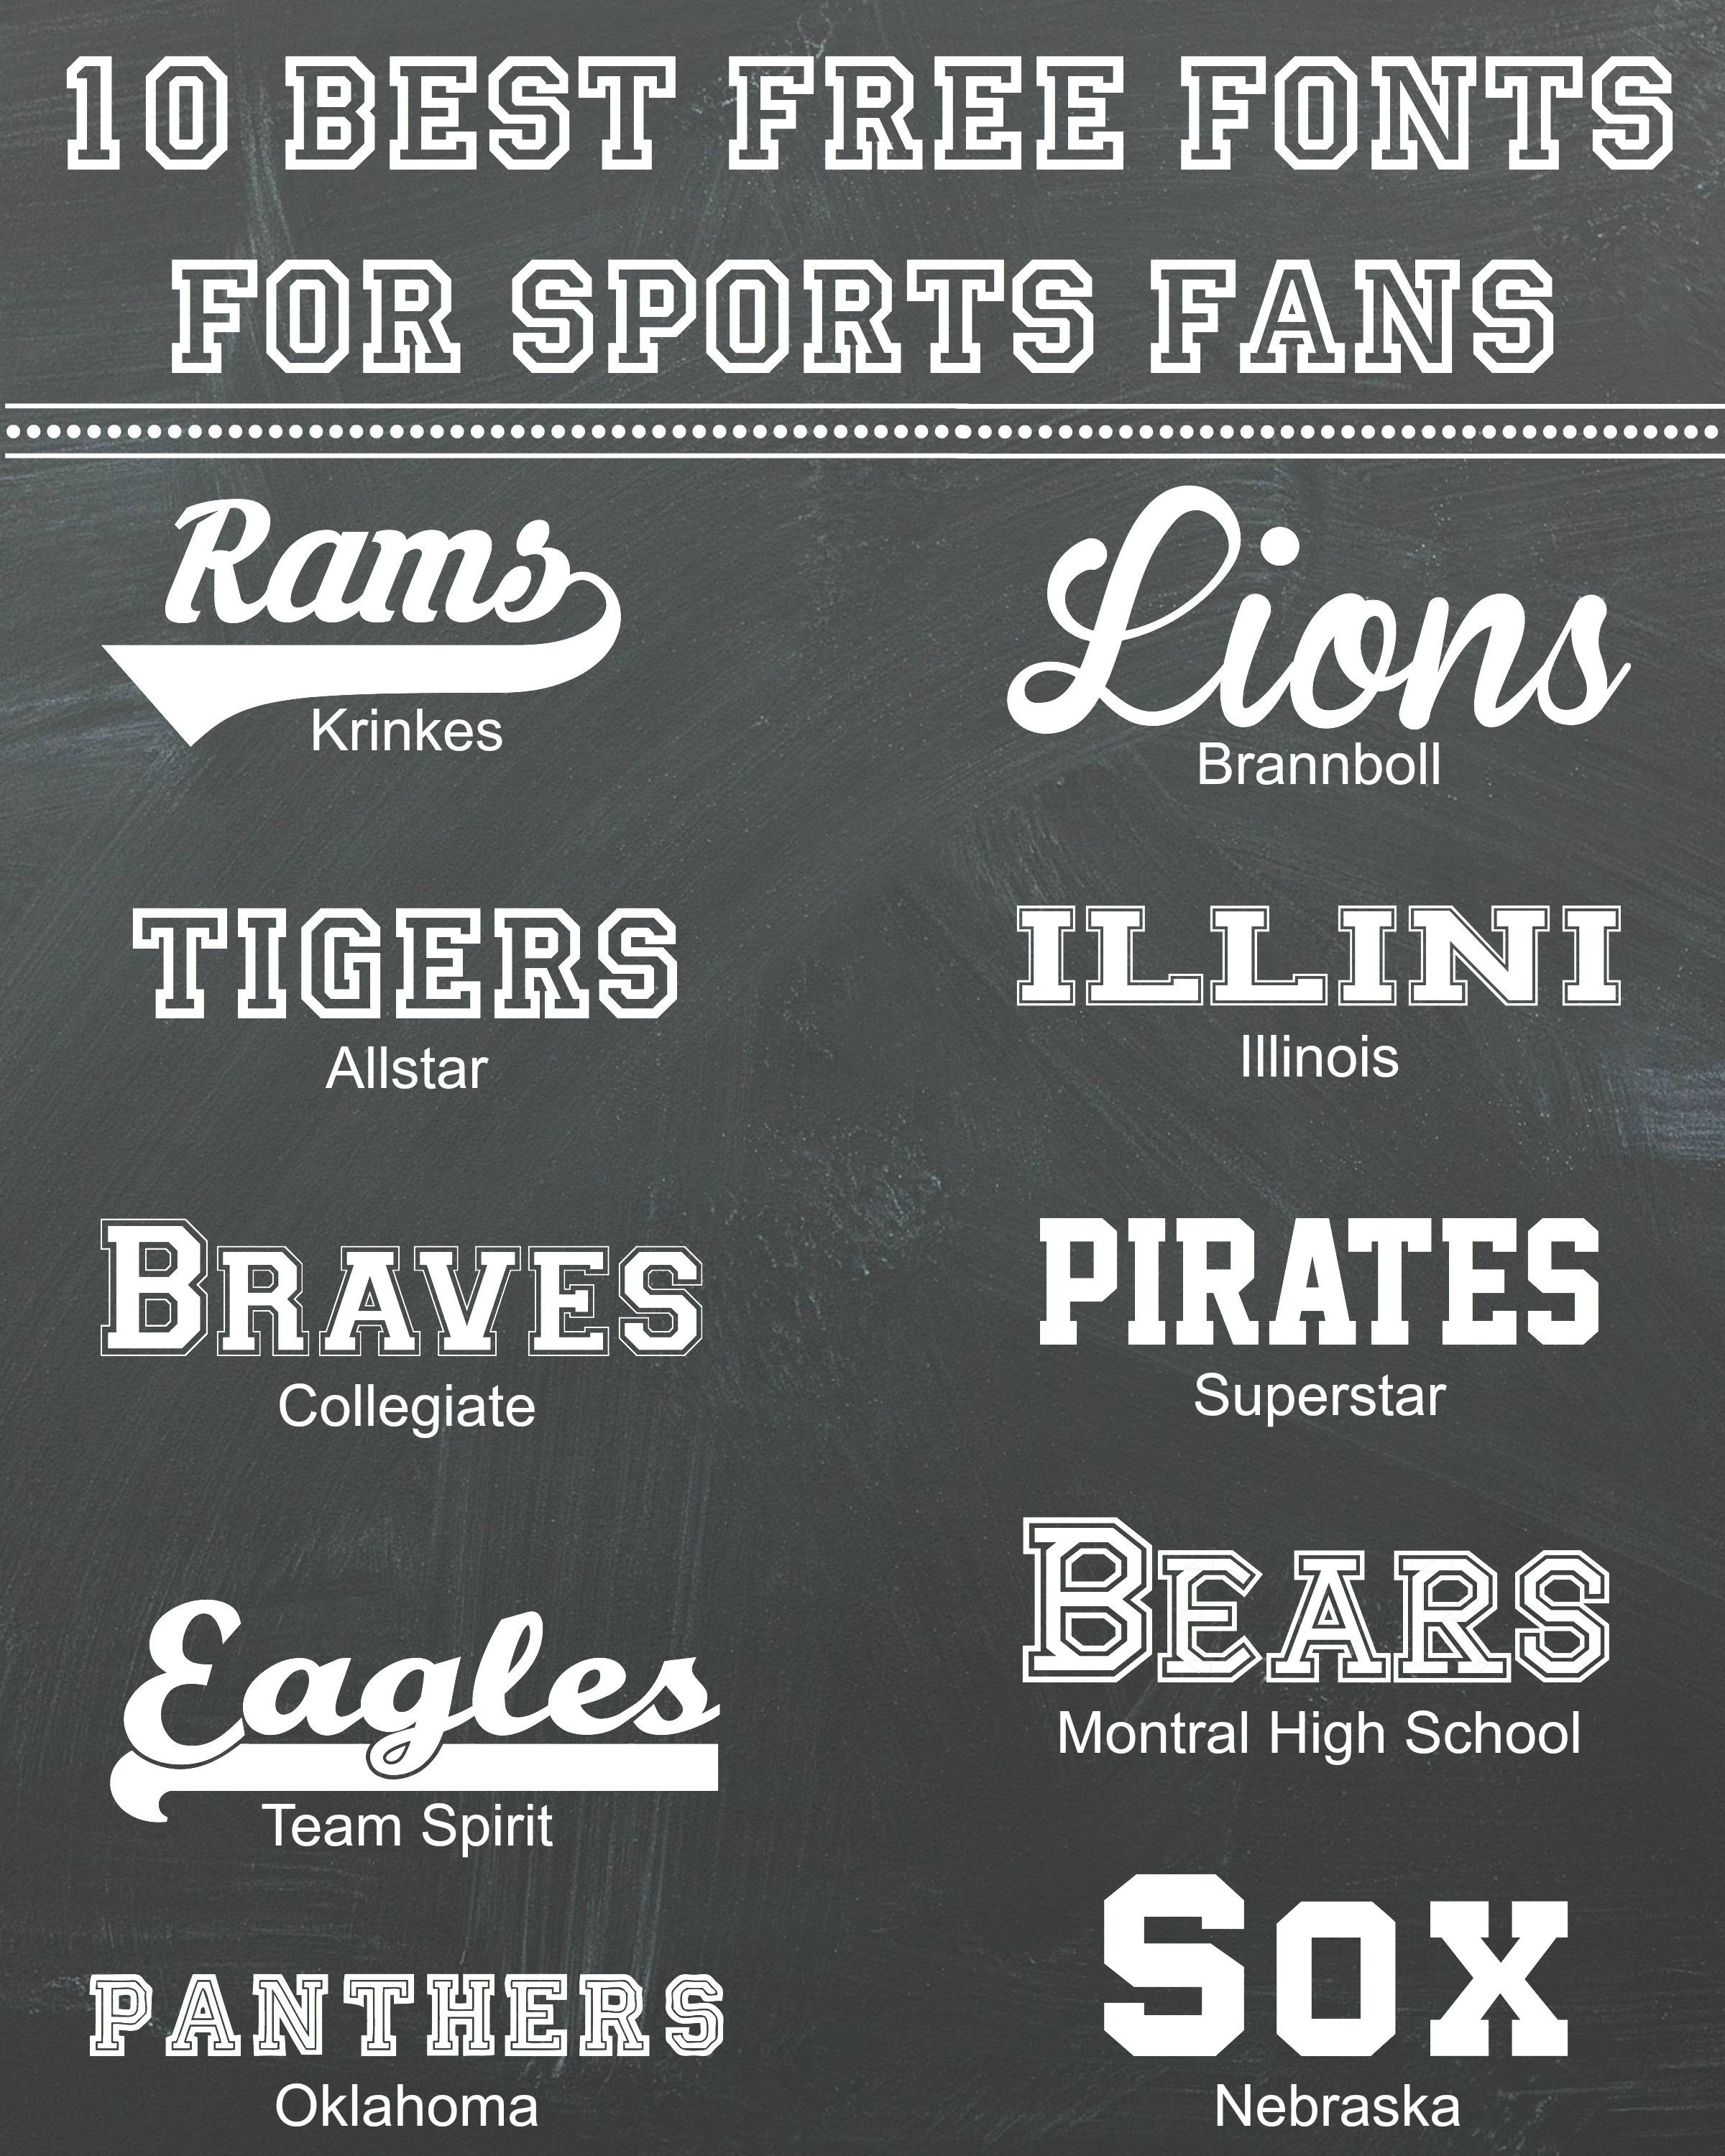 10 Best Free Fonts for Sports Fans - Rosewood and Grace